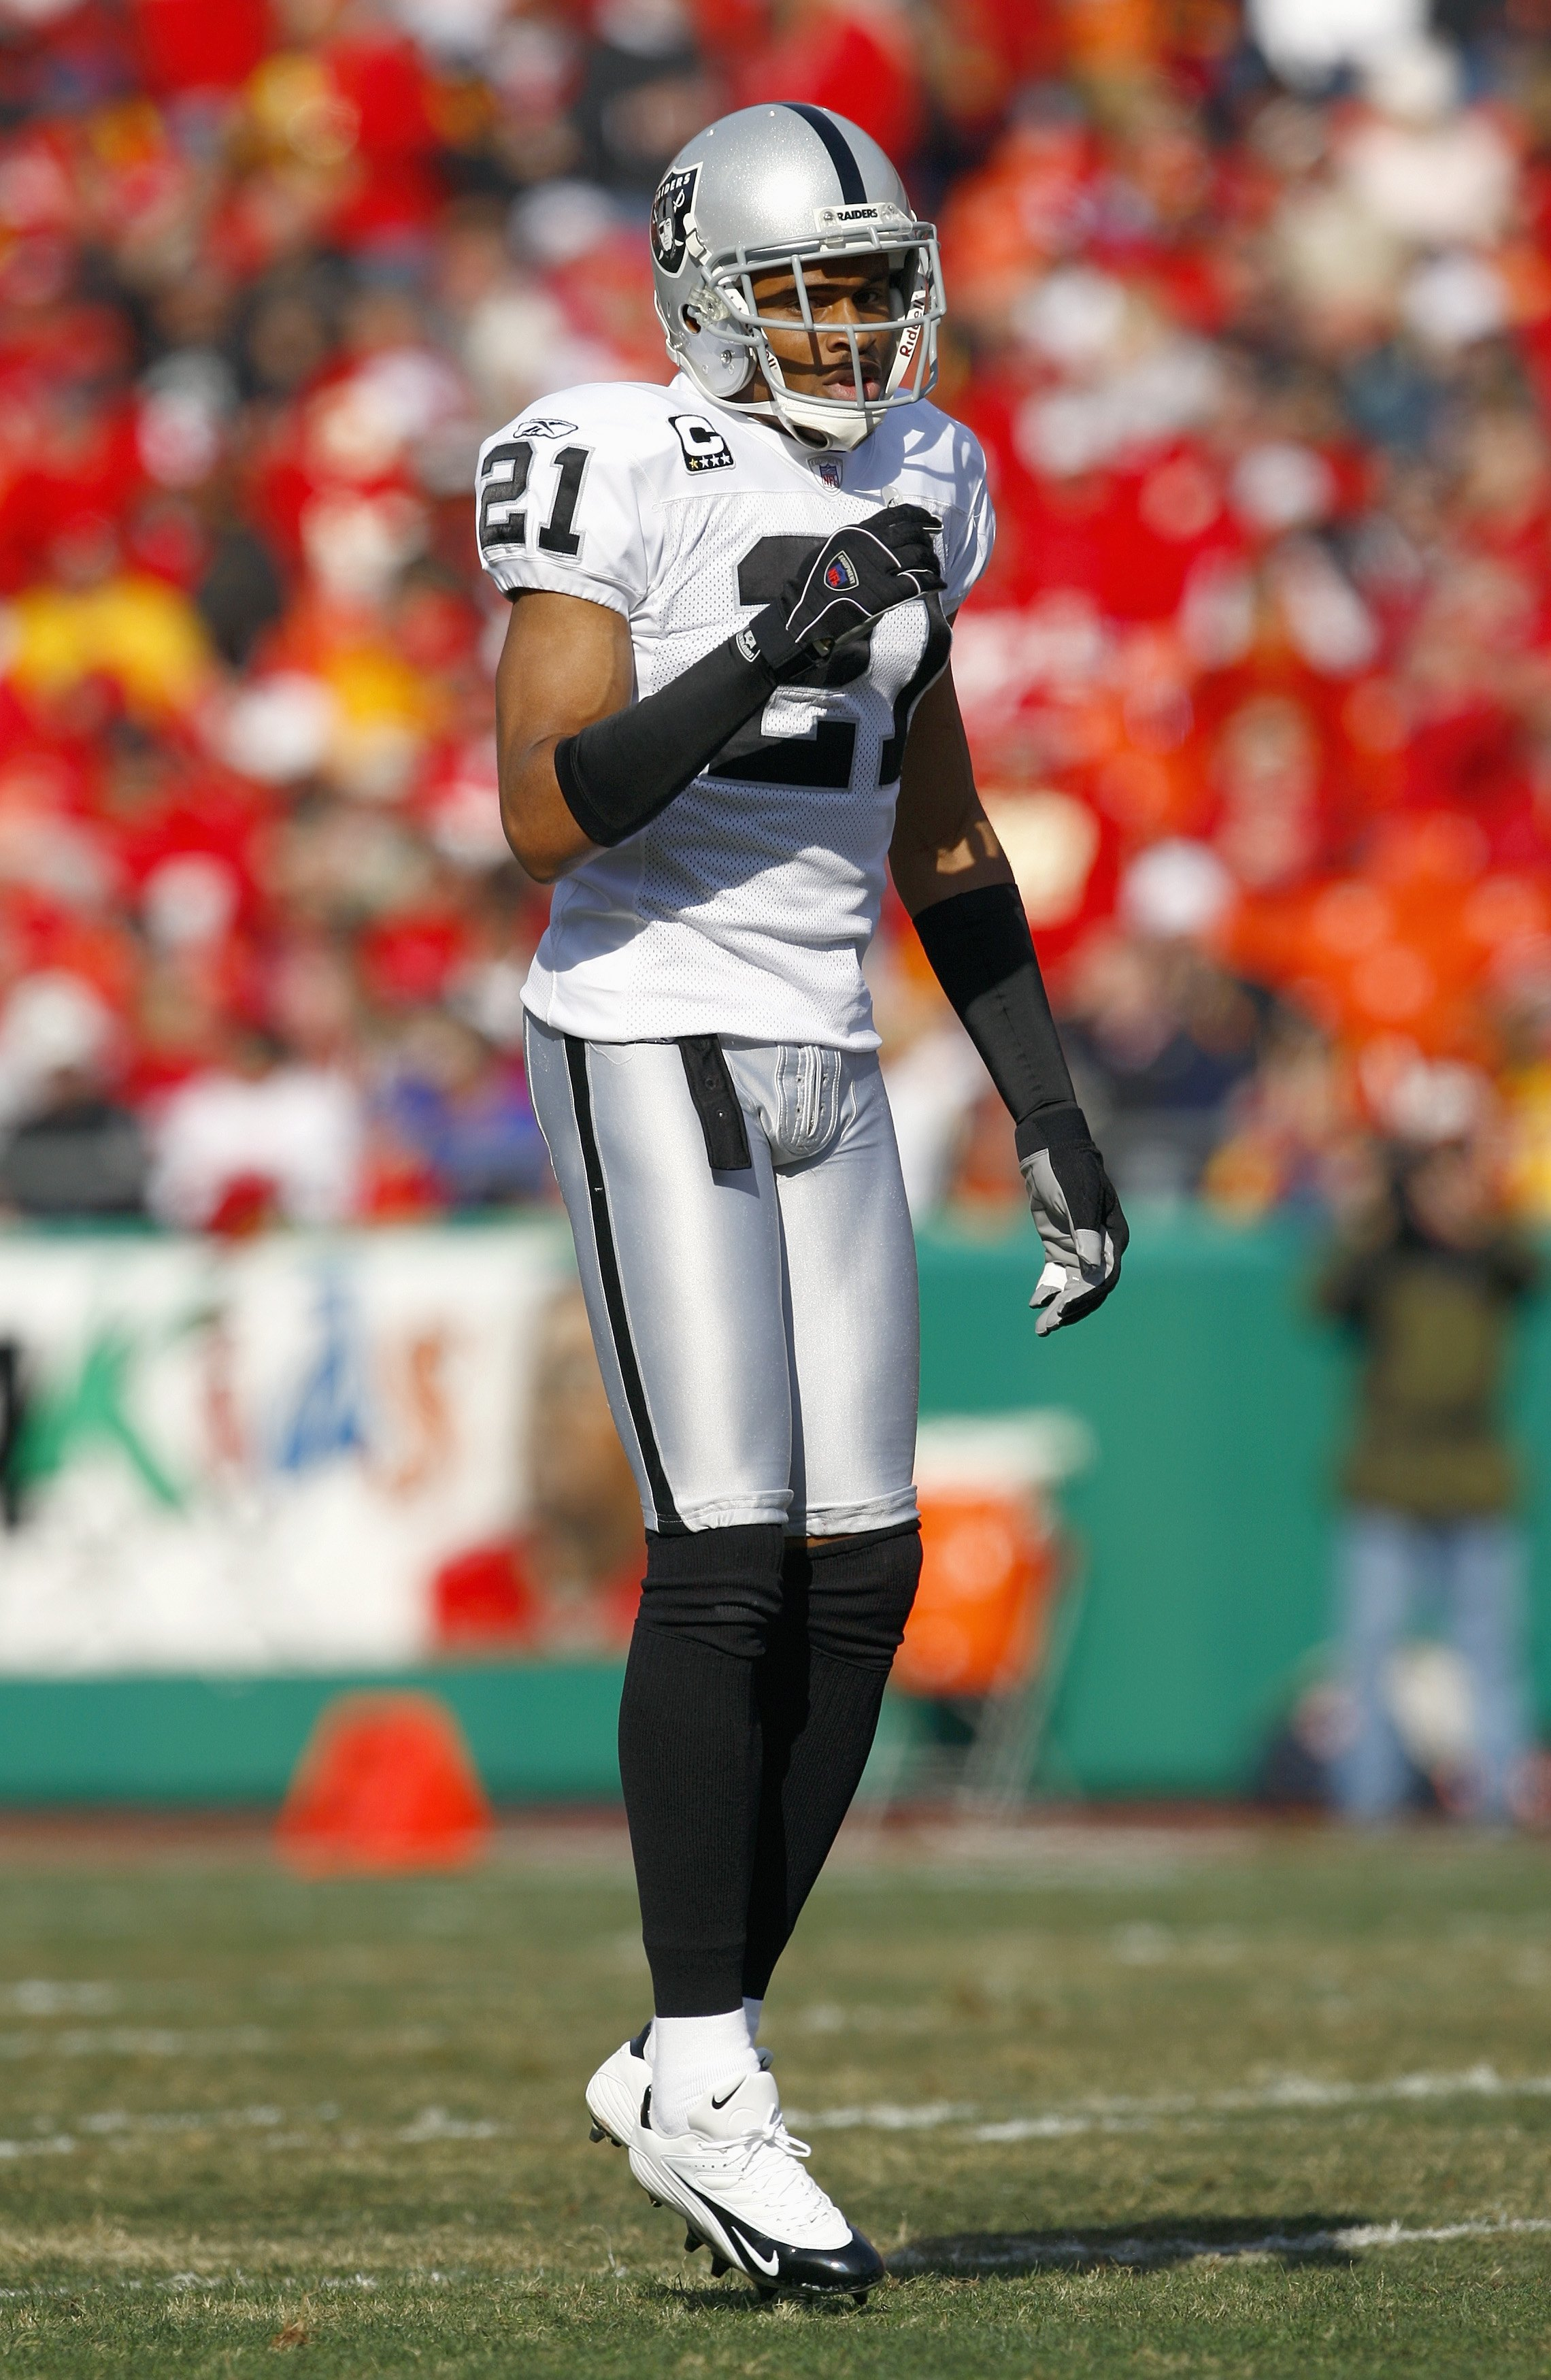 KANSAS CITY, MO - NOVEMBER 25: Nnamdi Asomugha #21of the Oakland Raiders hops on the field during the game against the Kansas City Chiefs November 25, 2007 at Arrowhead Stadium in Kansas City, Missouri. (Photo by Jamie Squire/Getty Images)